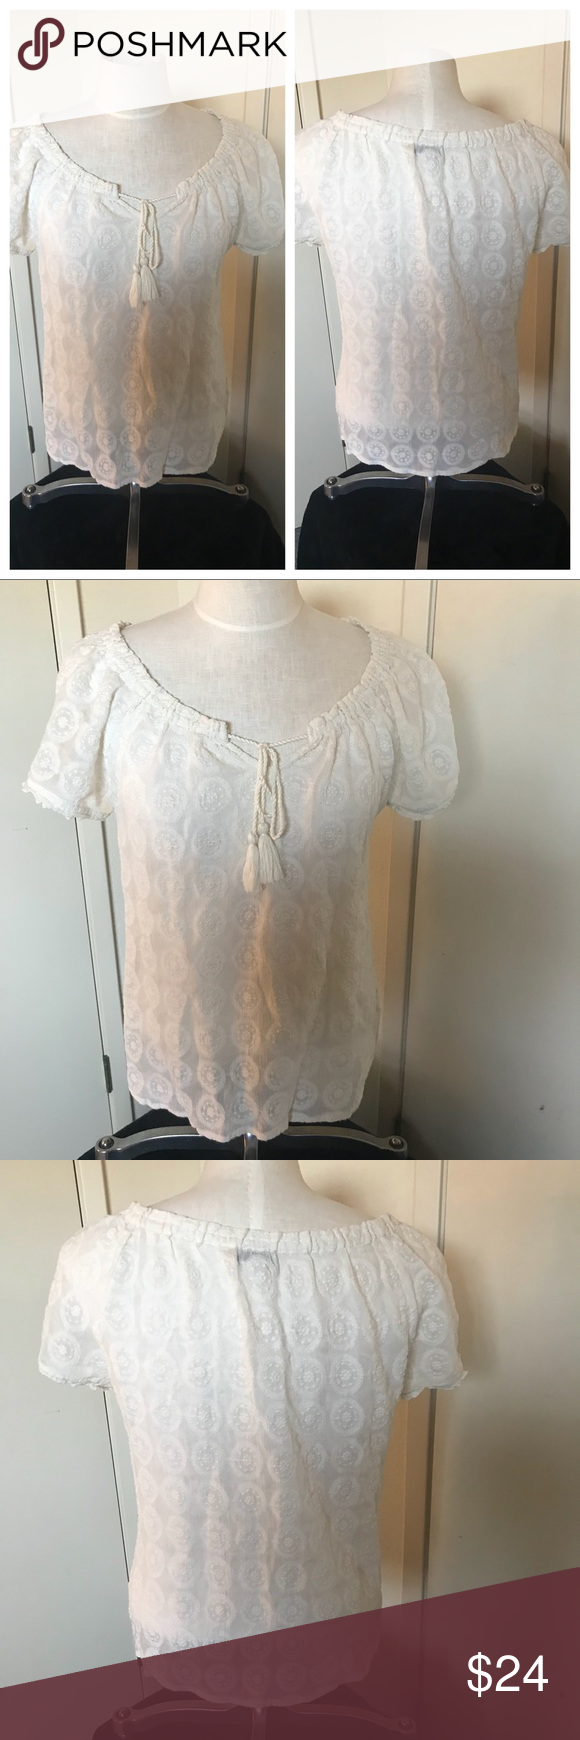 b45acfa97651c9 Lucky Brand cream lacy print blouse sz med Lucky Brand cream lacy  embroidered blouse sz med. Peasant style inspired. Very feminine. Bundle and  save.